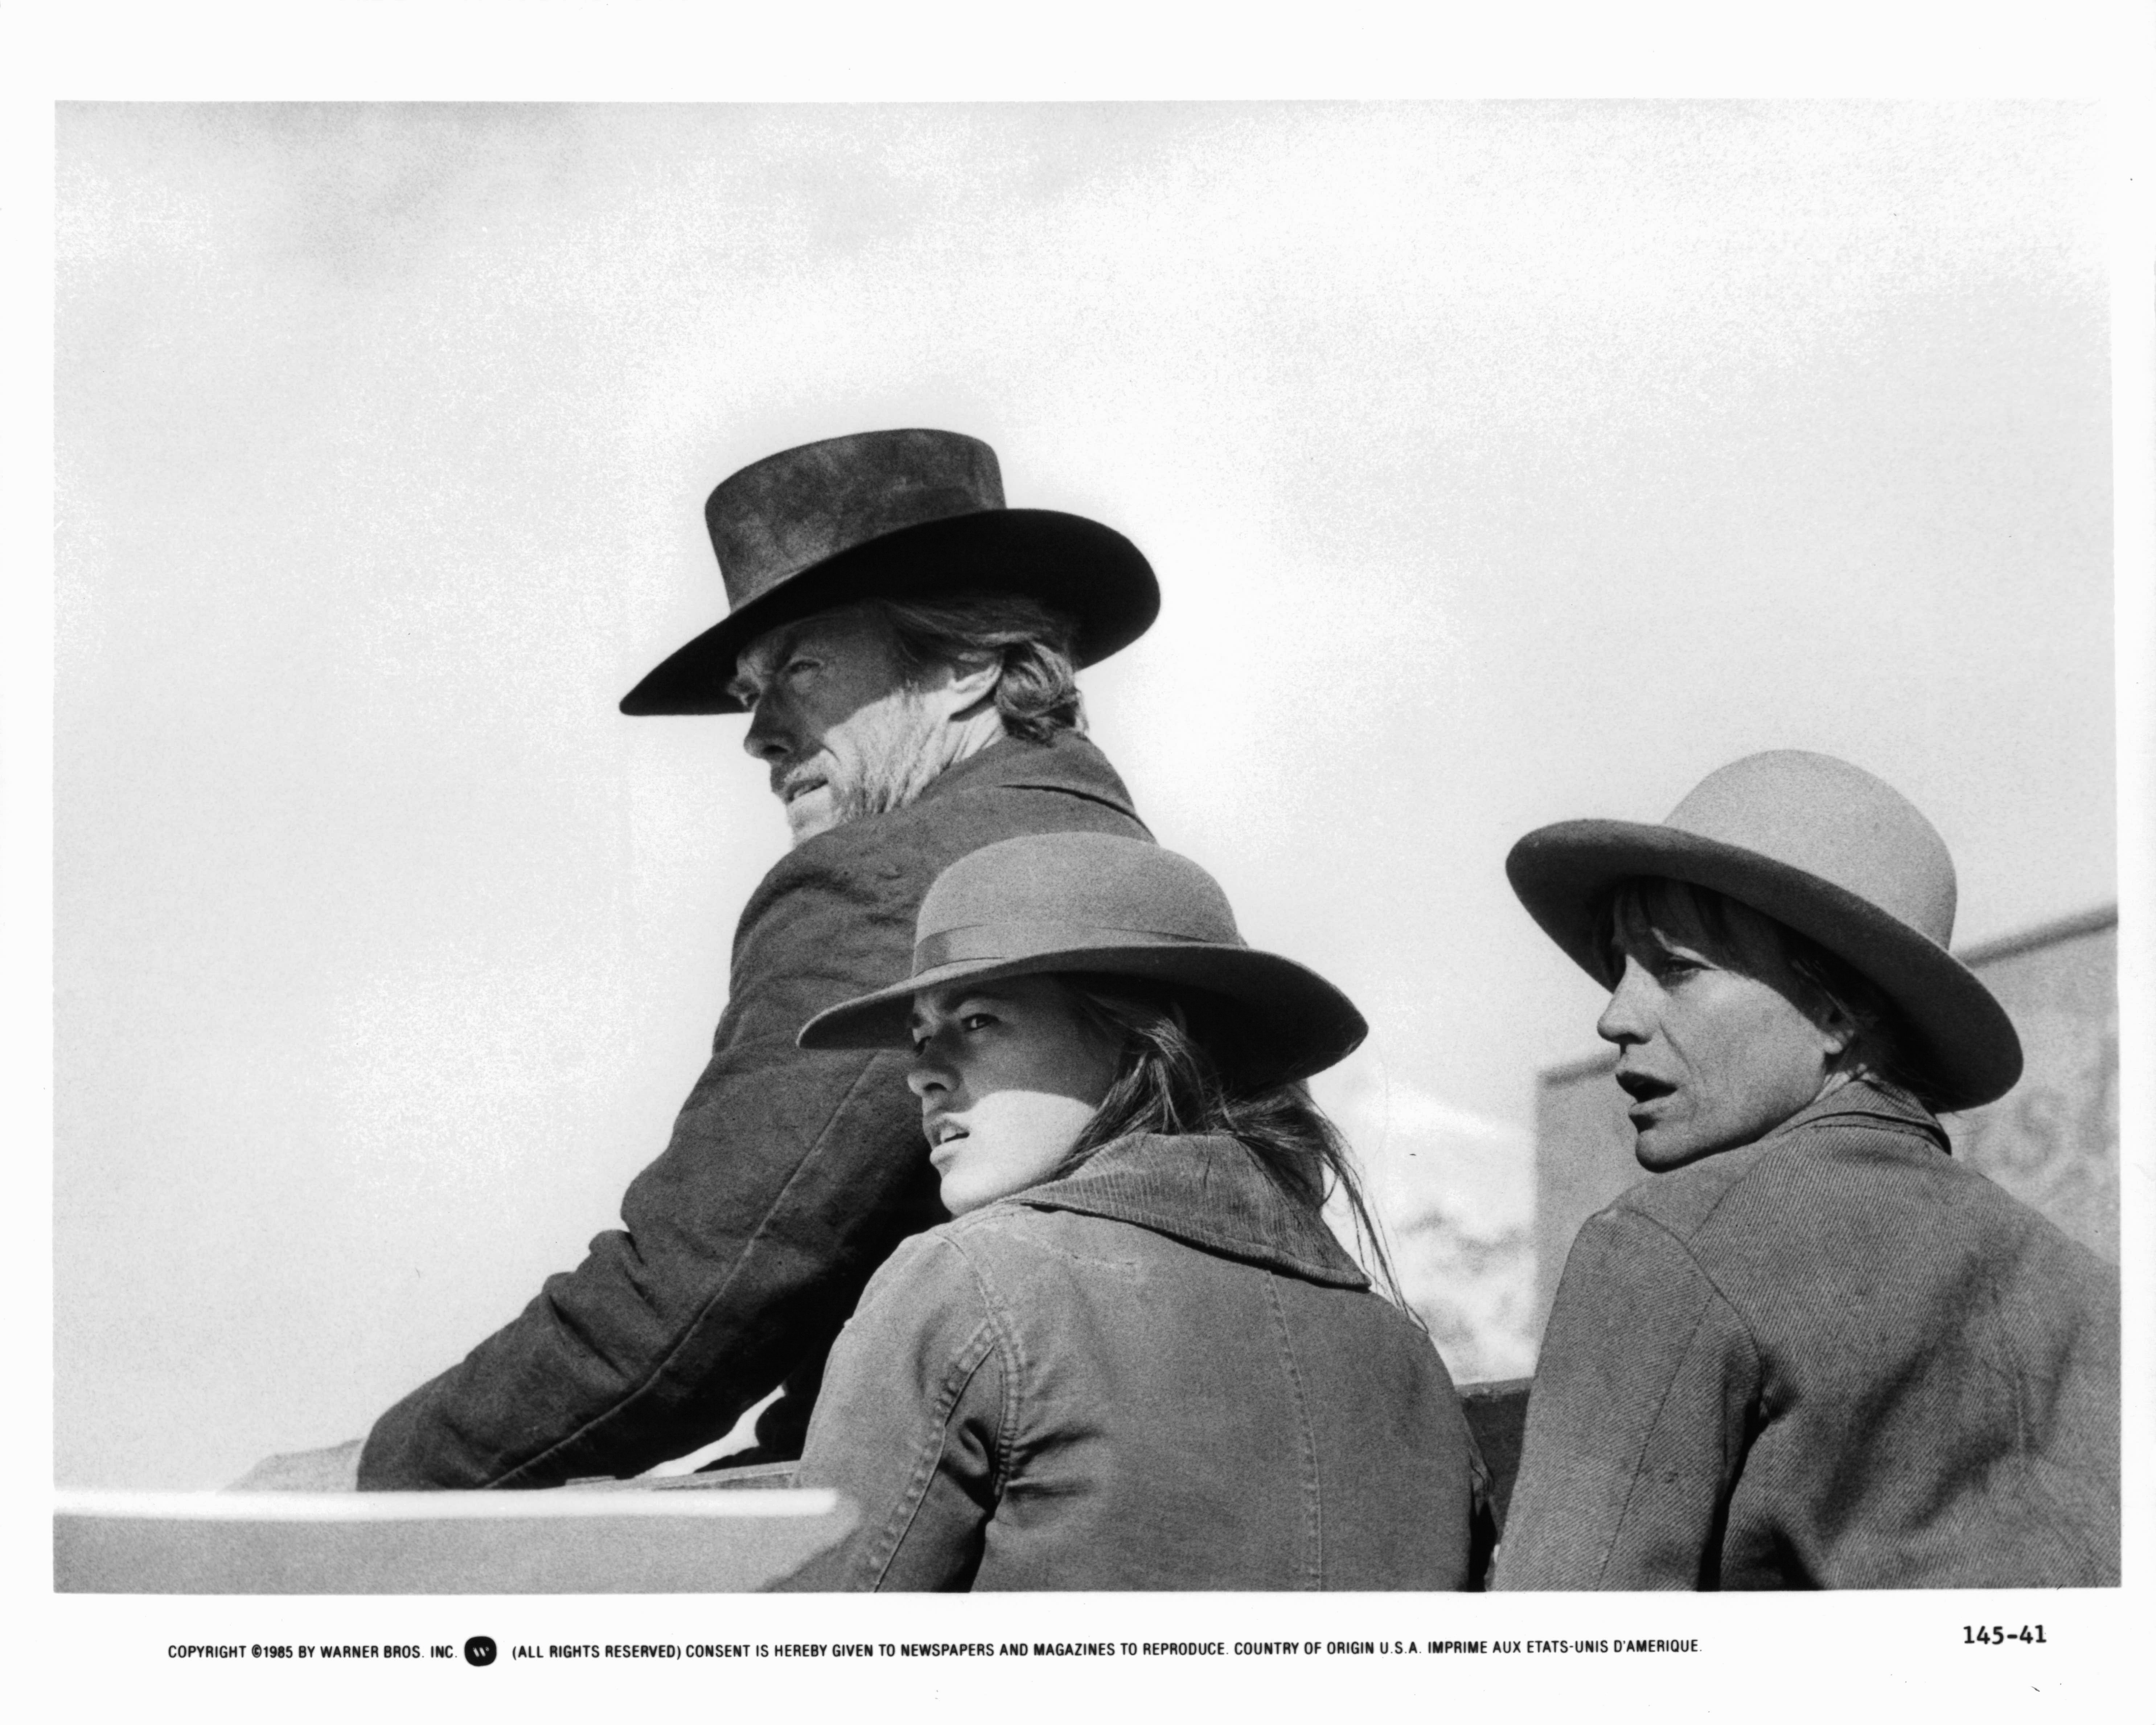 Clint Eastwood, Sydney Penny, and Carrie Snodgress in Pale Rider (1985)